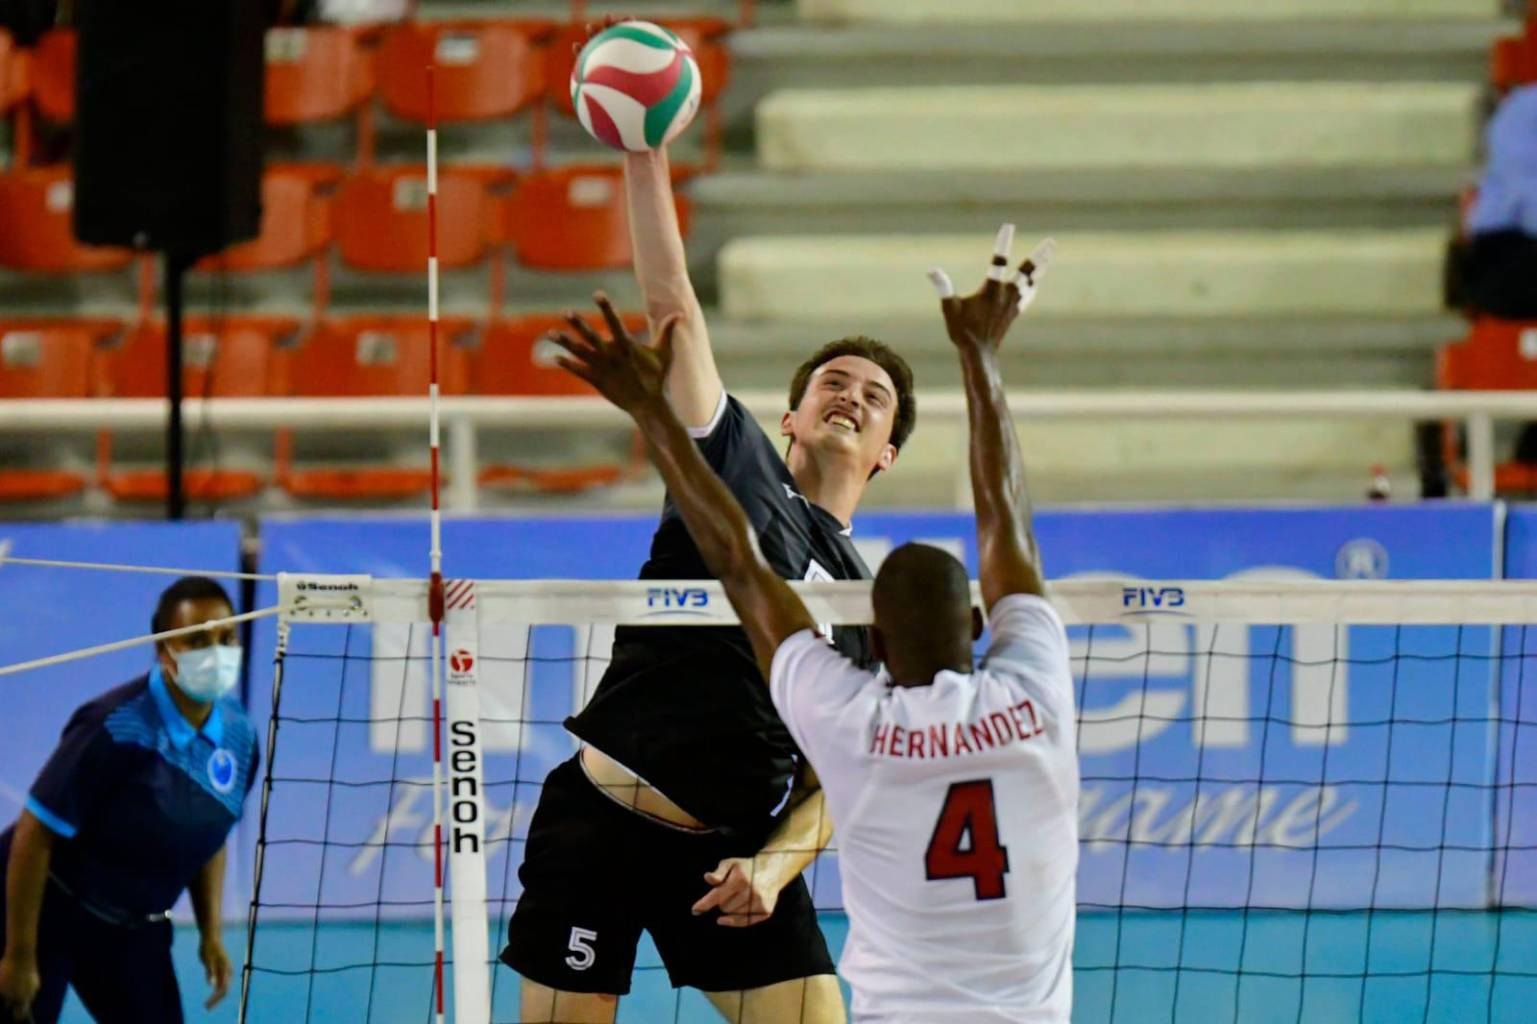 Canada was unbeaten in the Pan American Cup by beating the Dominican Republic